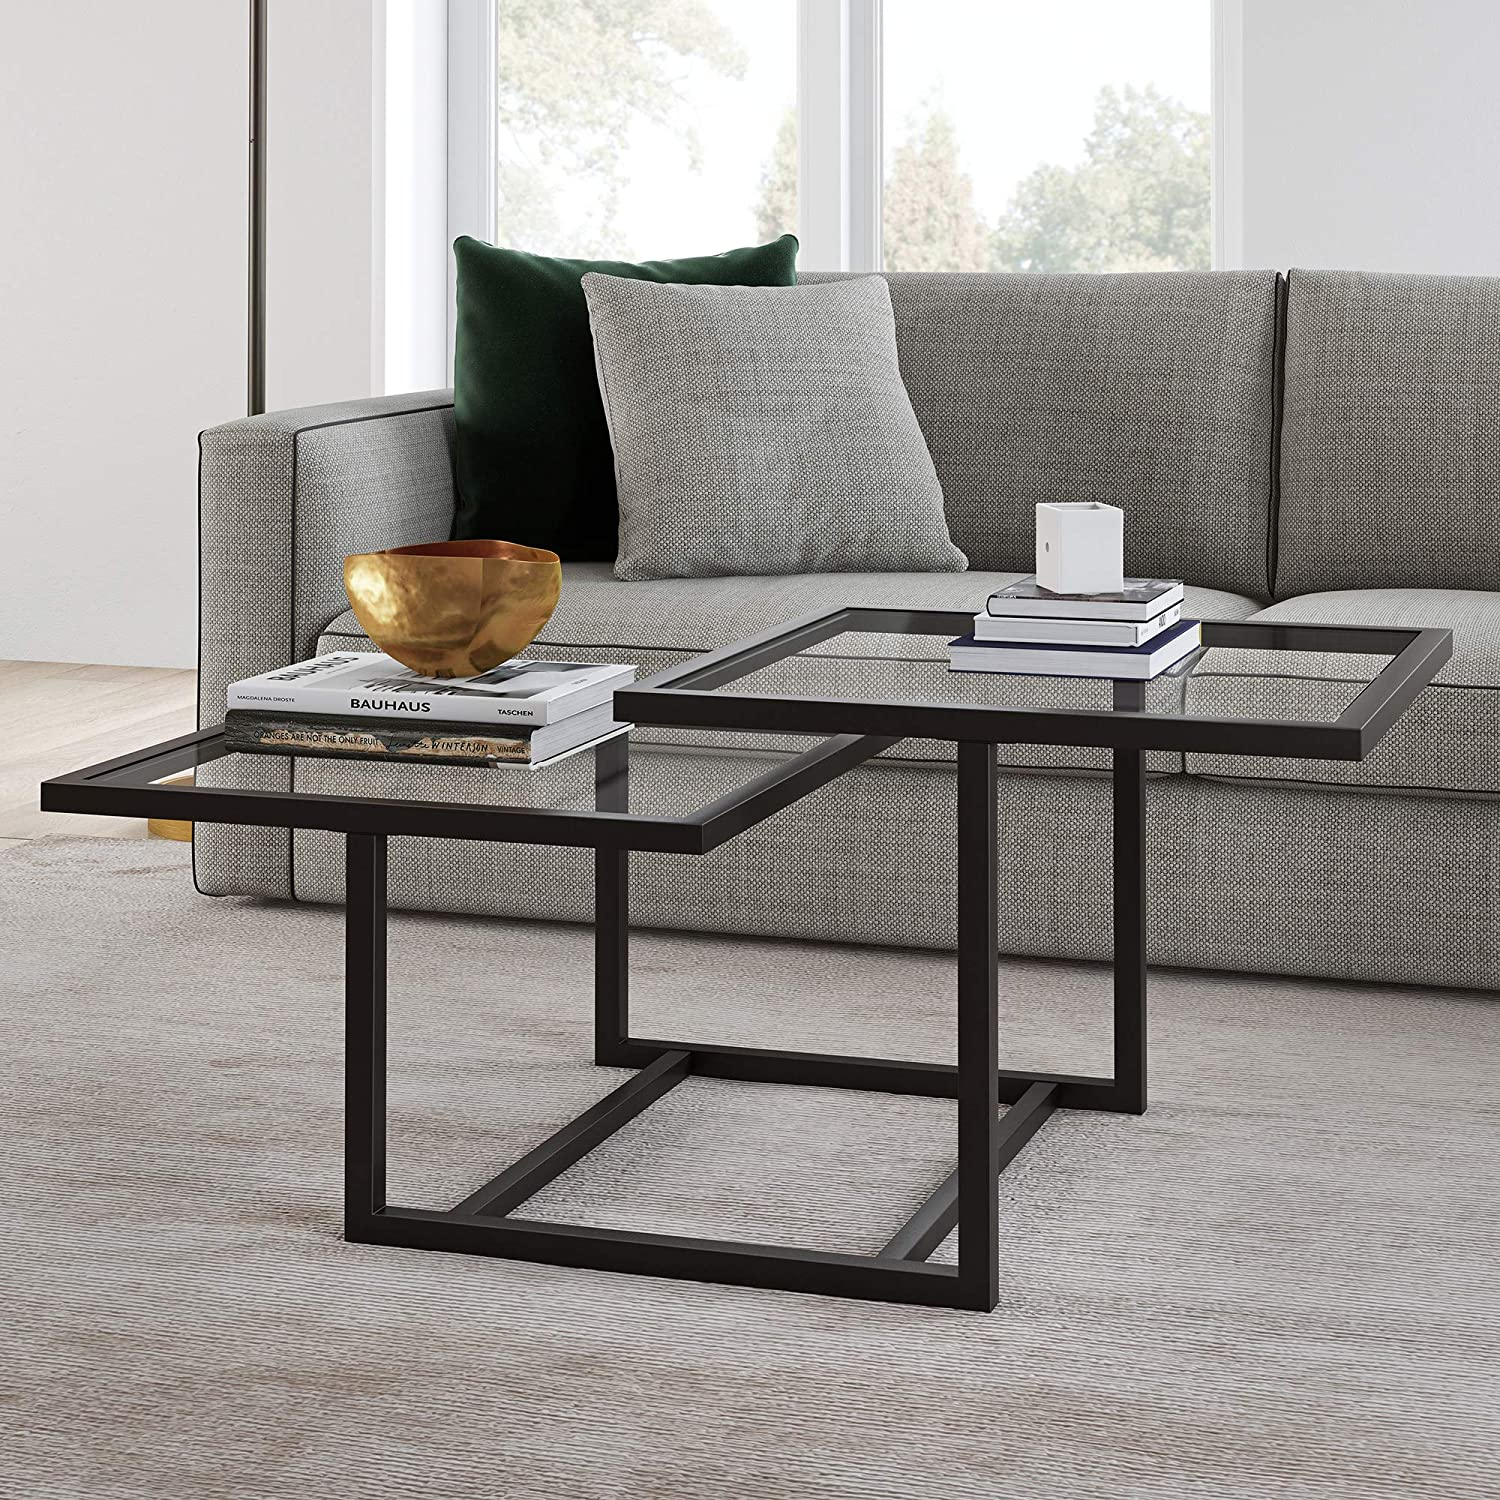 Henn&Hart Modern Chic 2-Tier Coffee Table for Living Room, 18